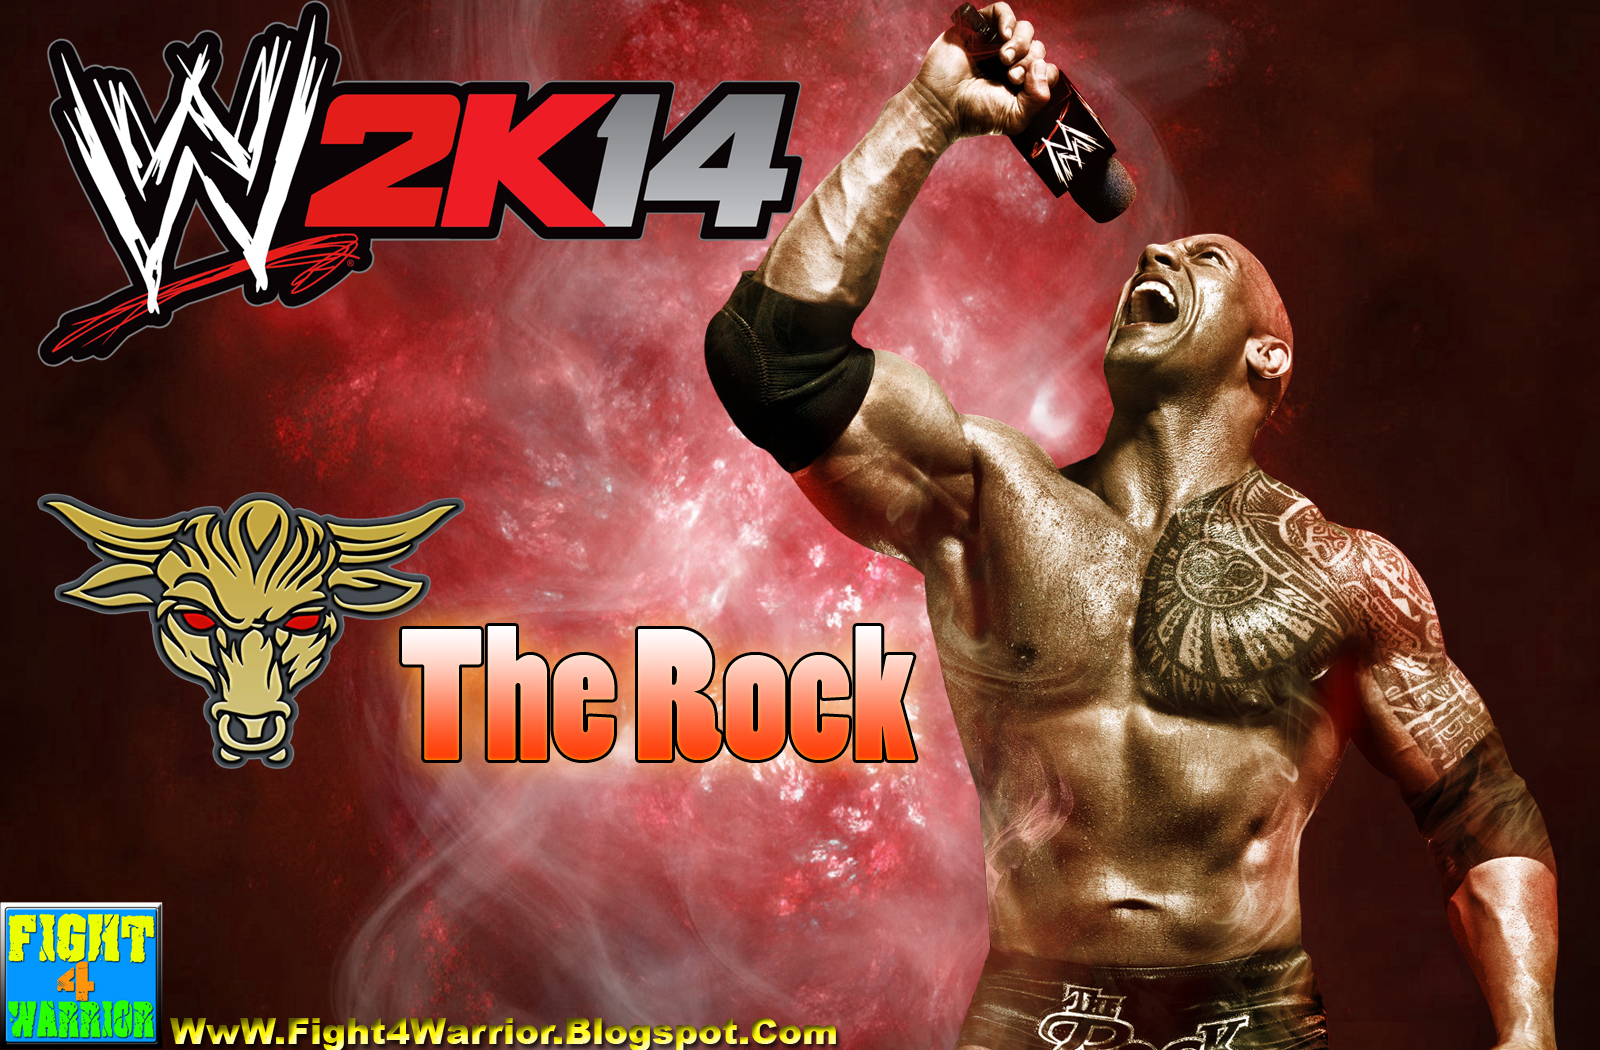 wwe the rock 2k14 | onlygfx | free hd desktop wallpapers for pc